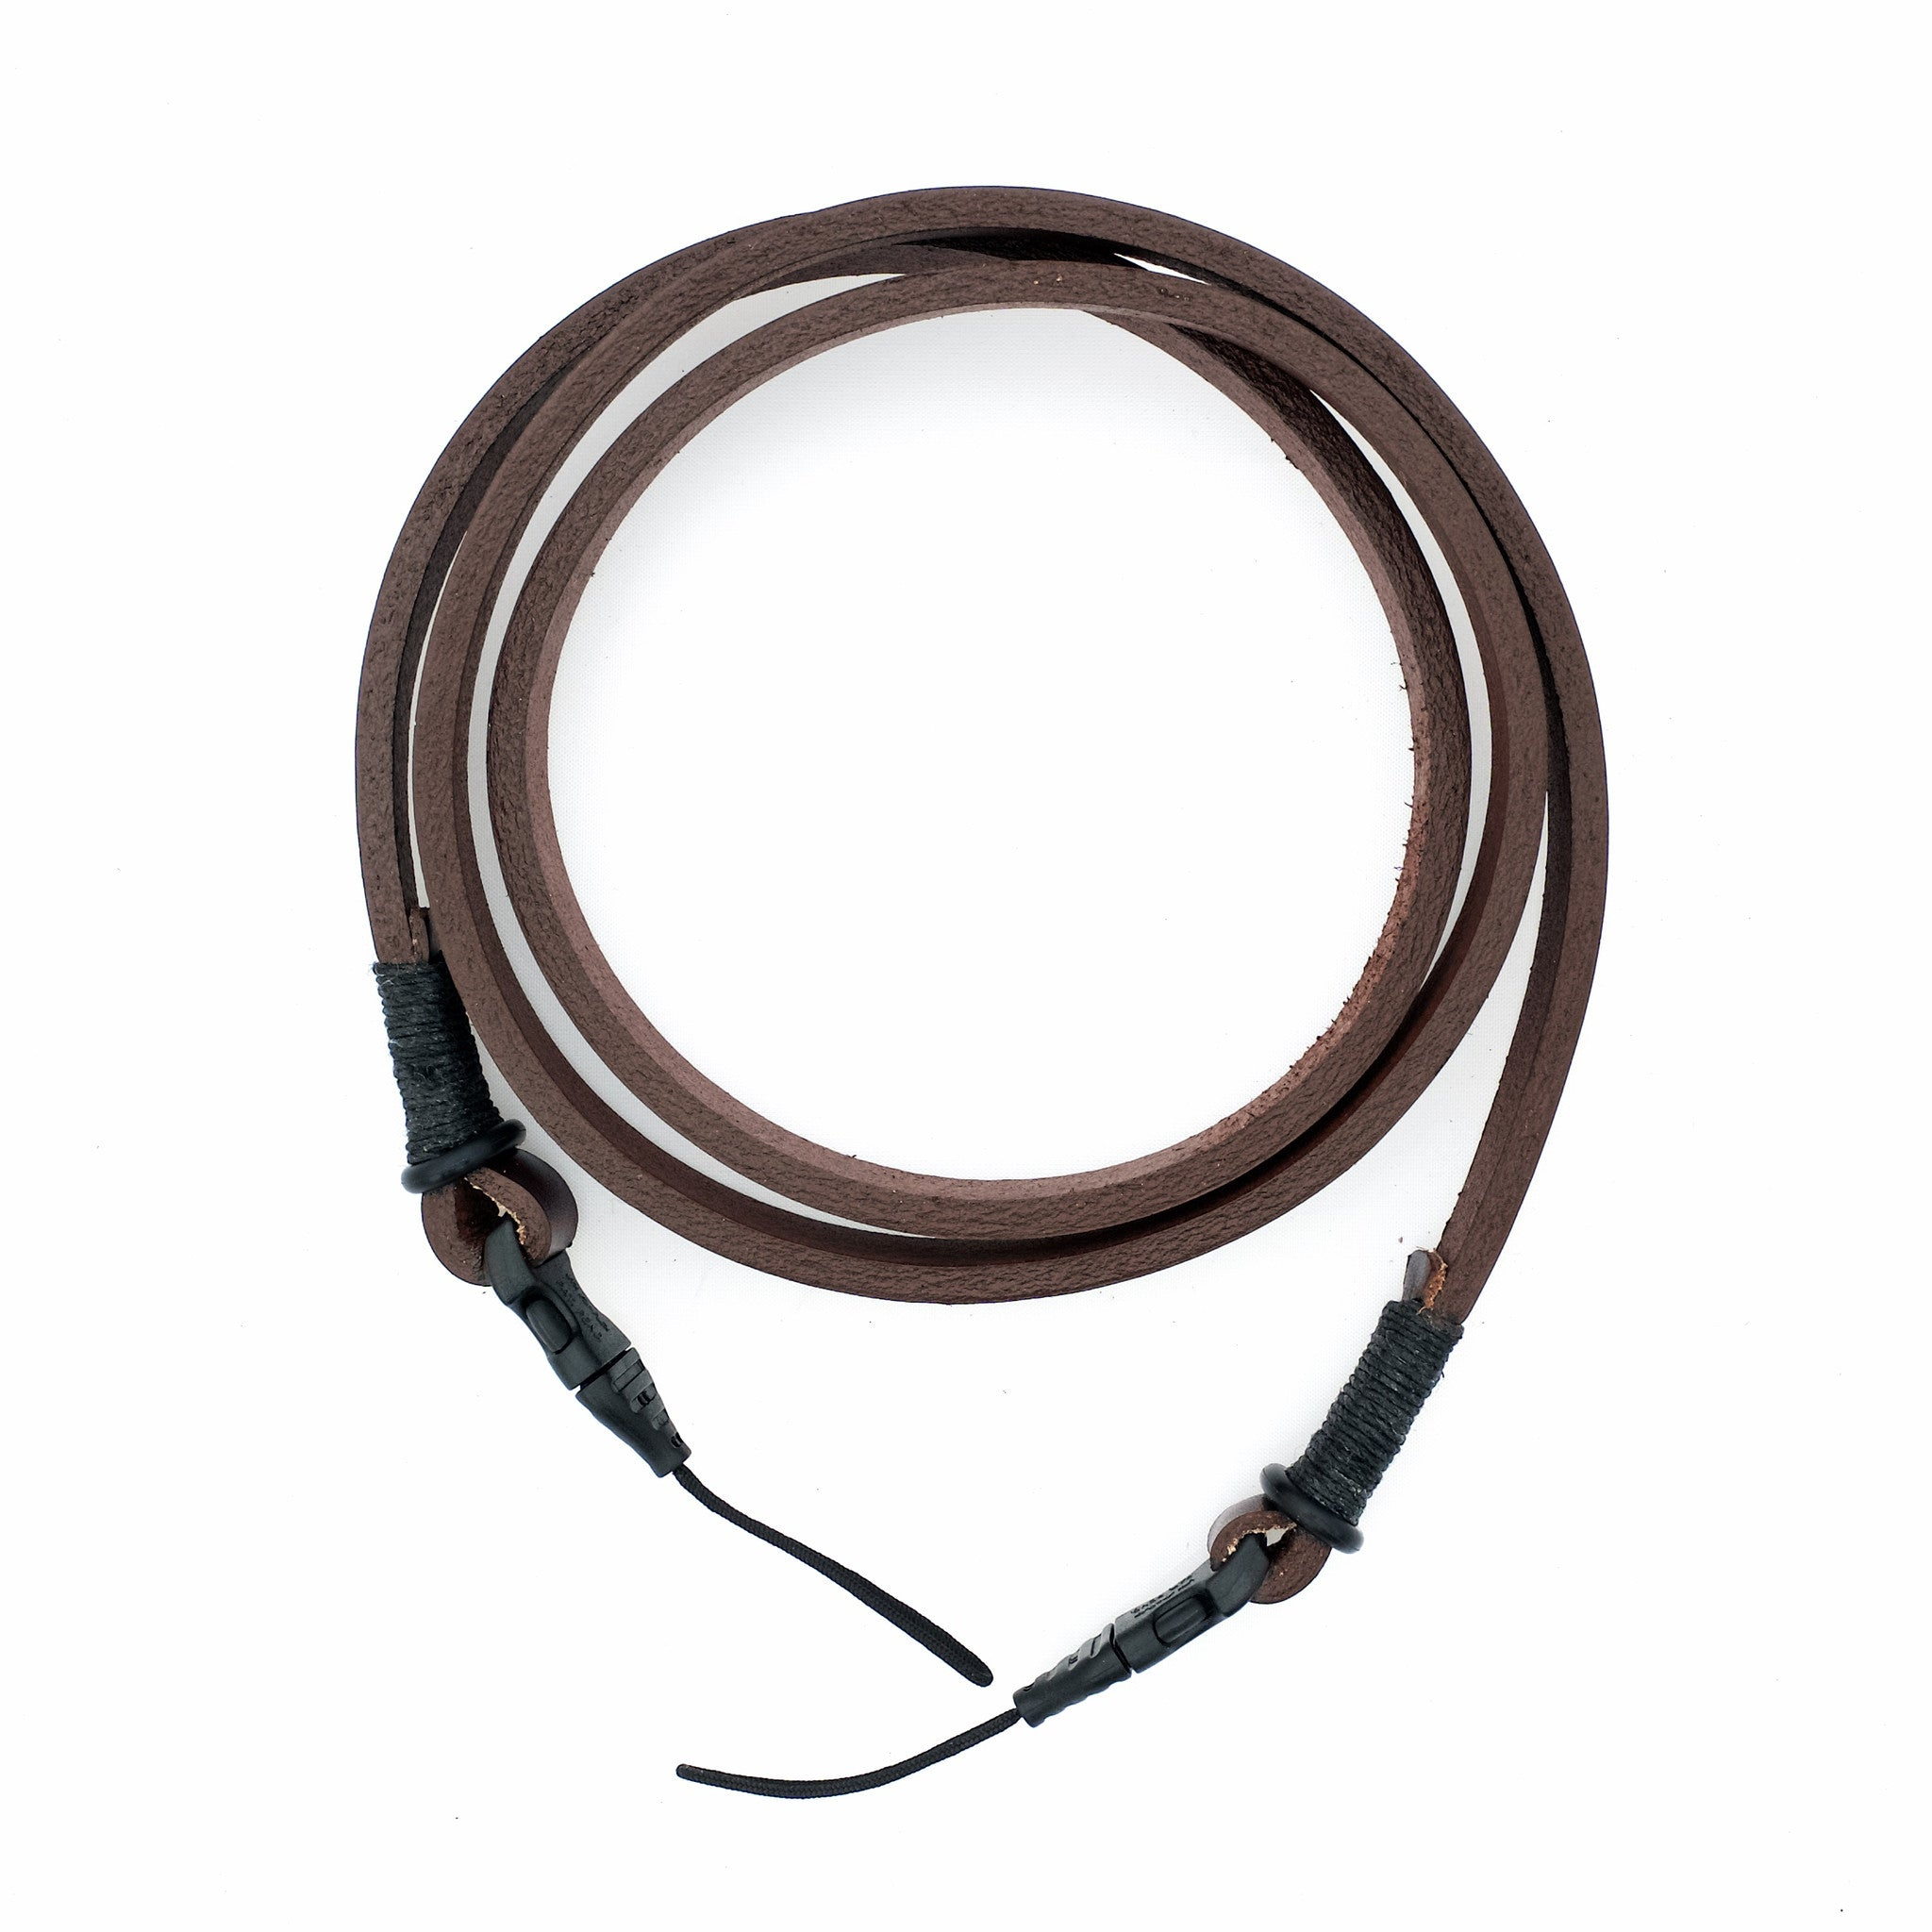 Camera Neck Strap With Quick Release—Brown/Black